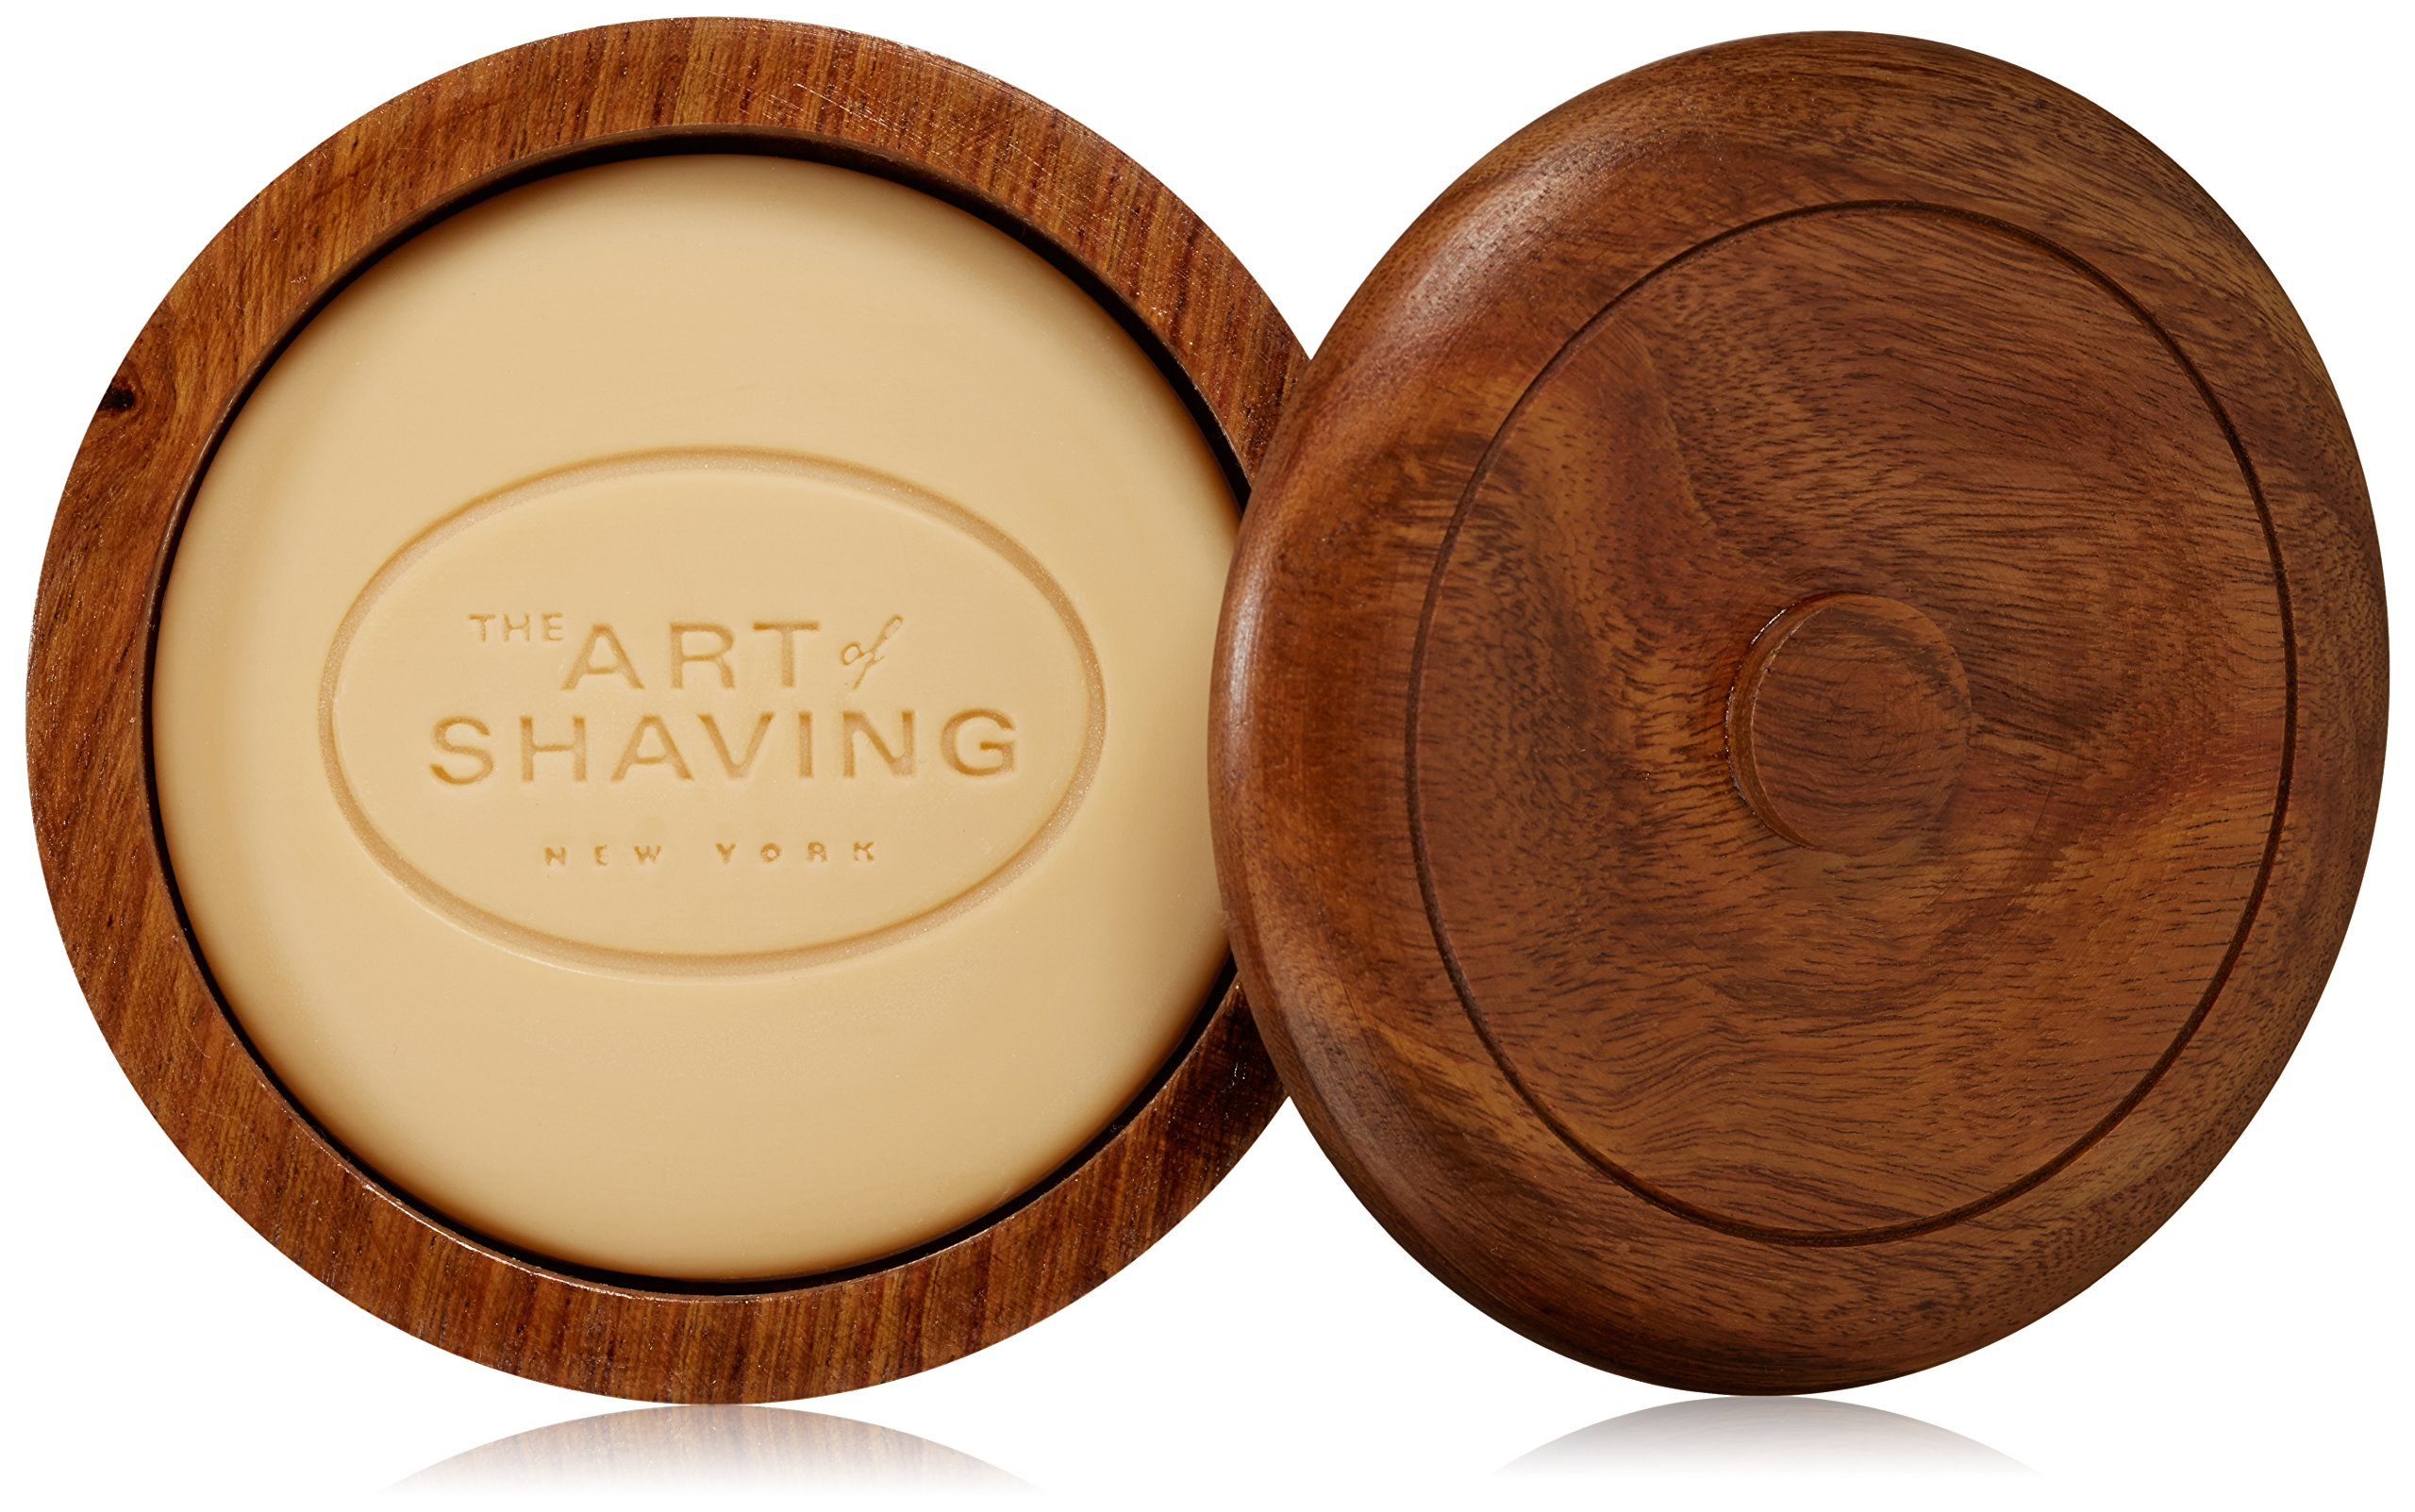 The Art of Shaving TAOS Soap with Bowl, Lemon, 3.3 oz. by The Art of Shaving